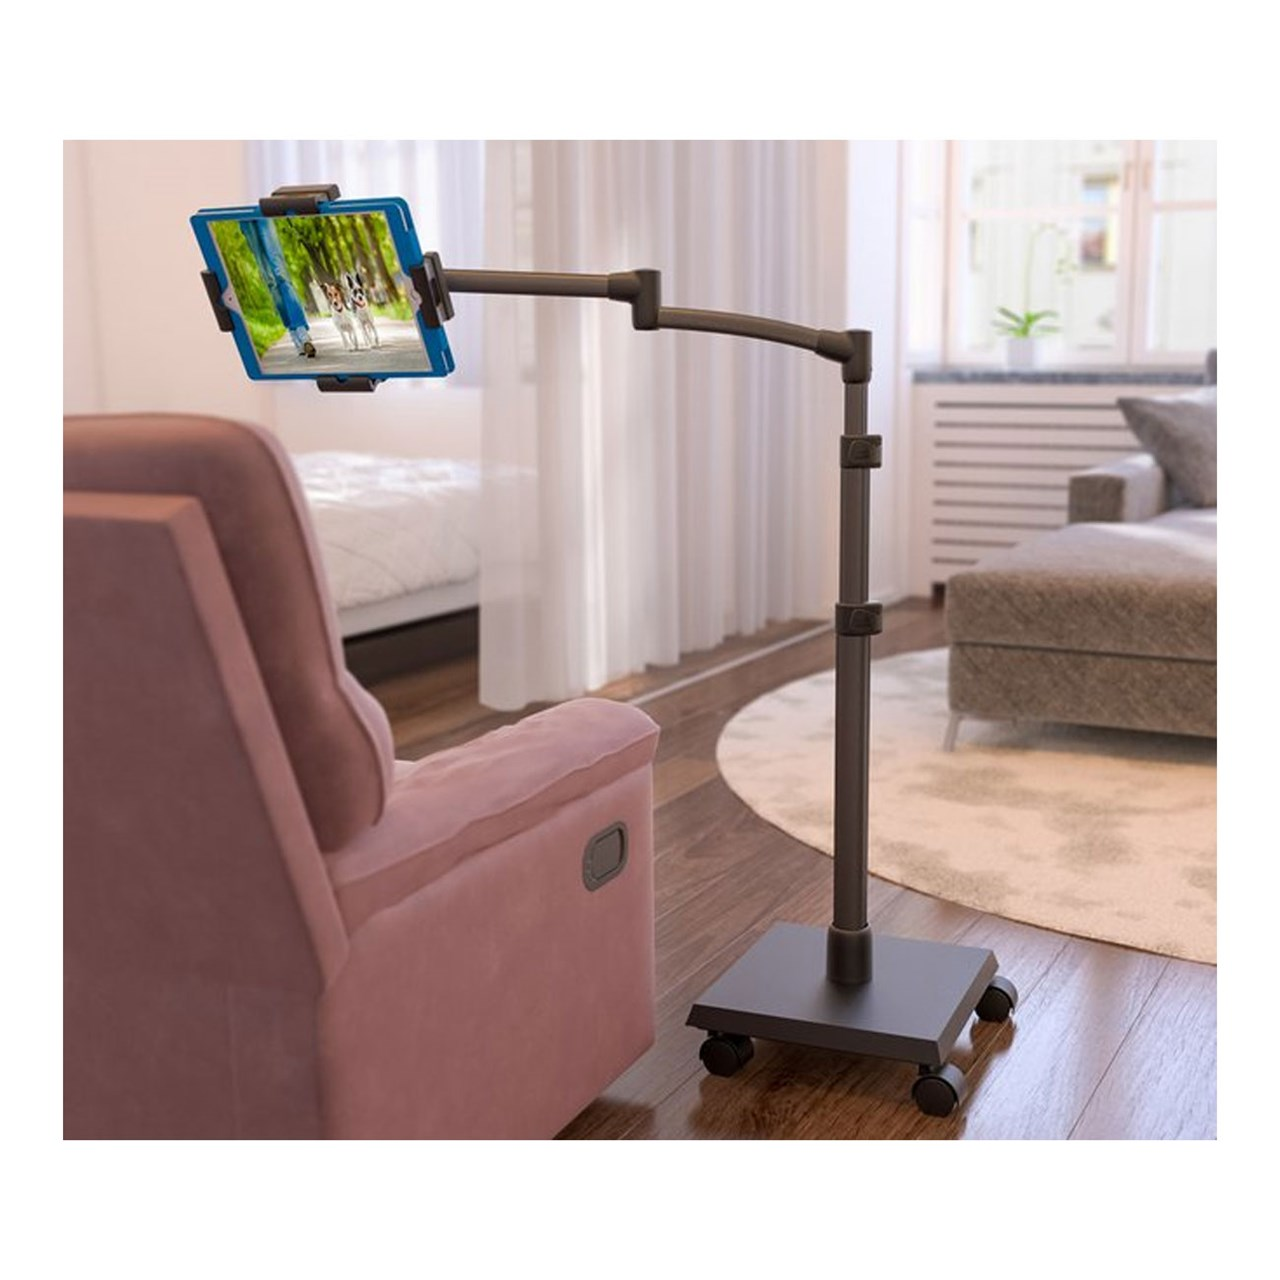 Pleasant Levo G2 Deluxe Tablet Stand Gmtry Best Dining Table And Chair Ideas Images Gmtryco